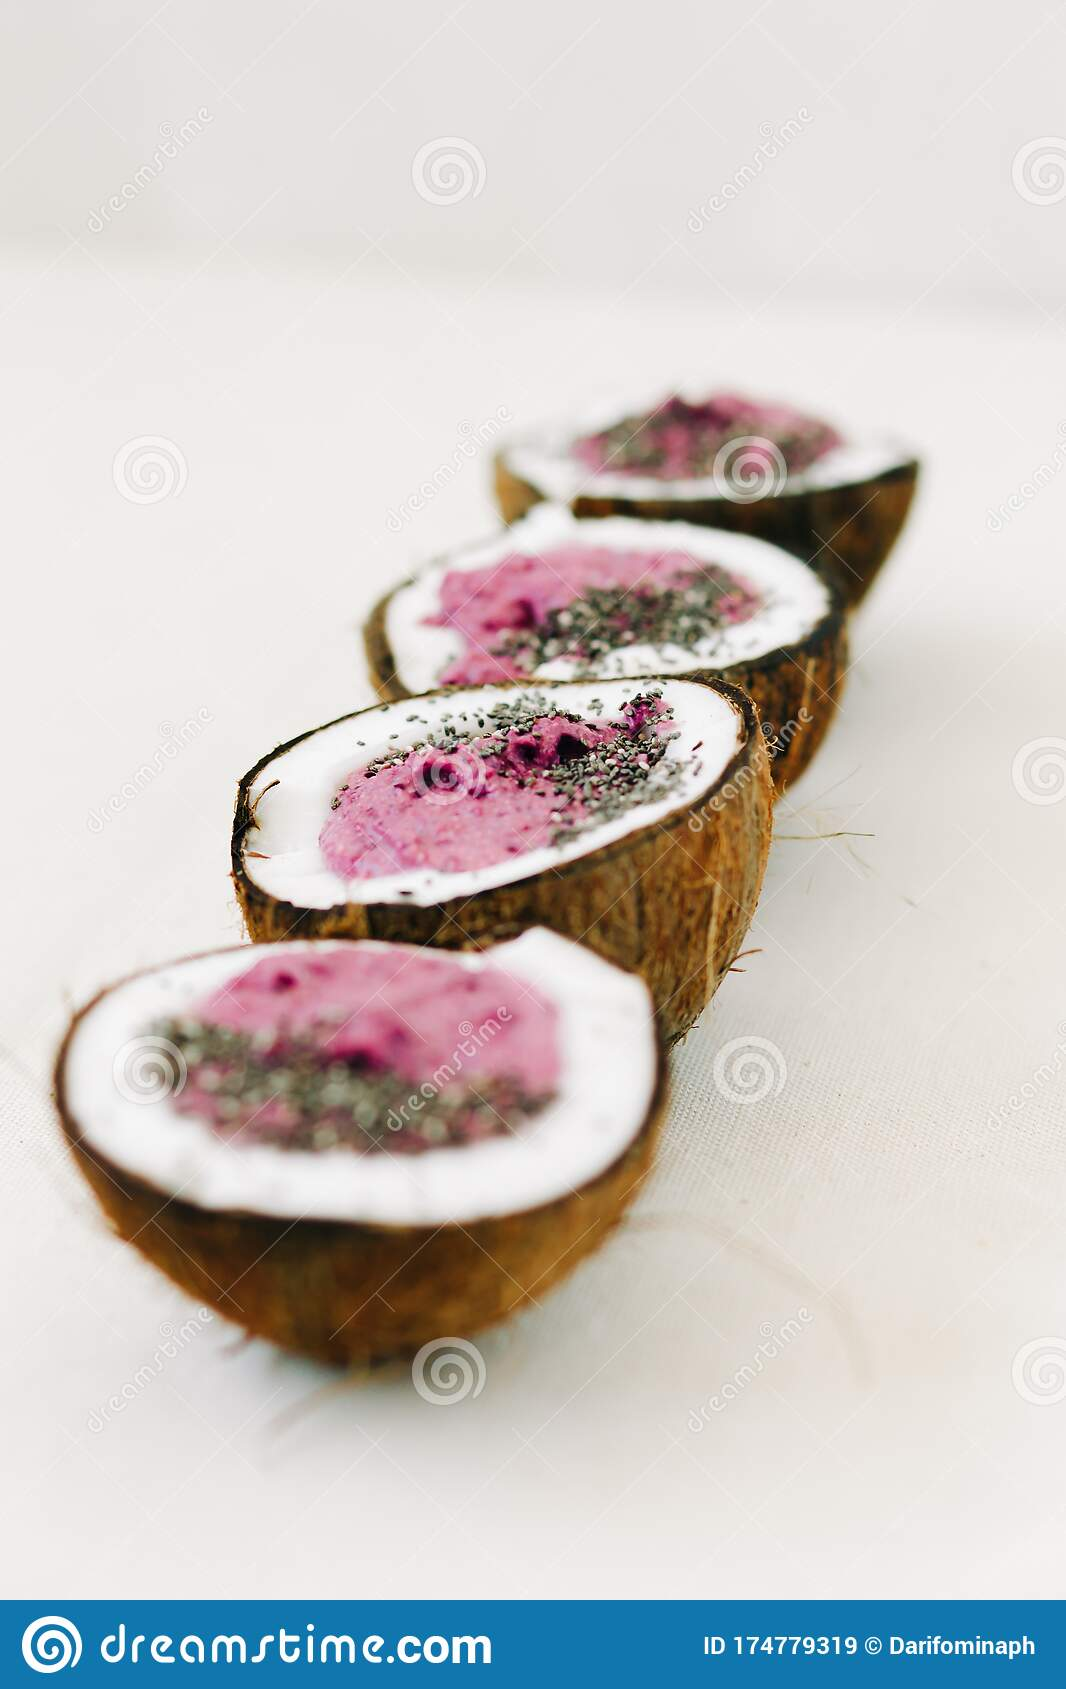 Four Plates Of Natural Coconut Shell With A Healthy Breakfast Green Buckwheat Smoothie With Berries And Chia Seeds Stock Image Image Of Healthy Ingredient 174779319